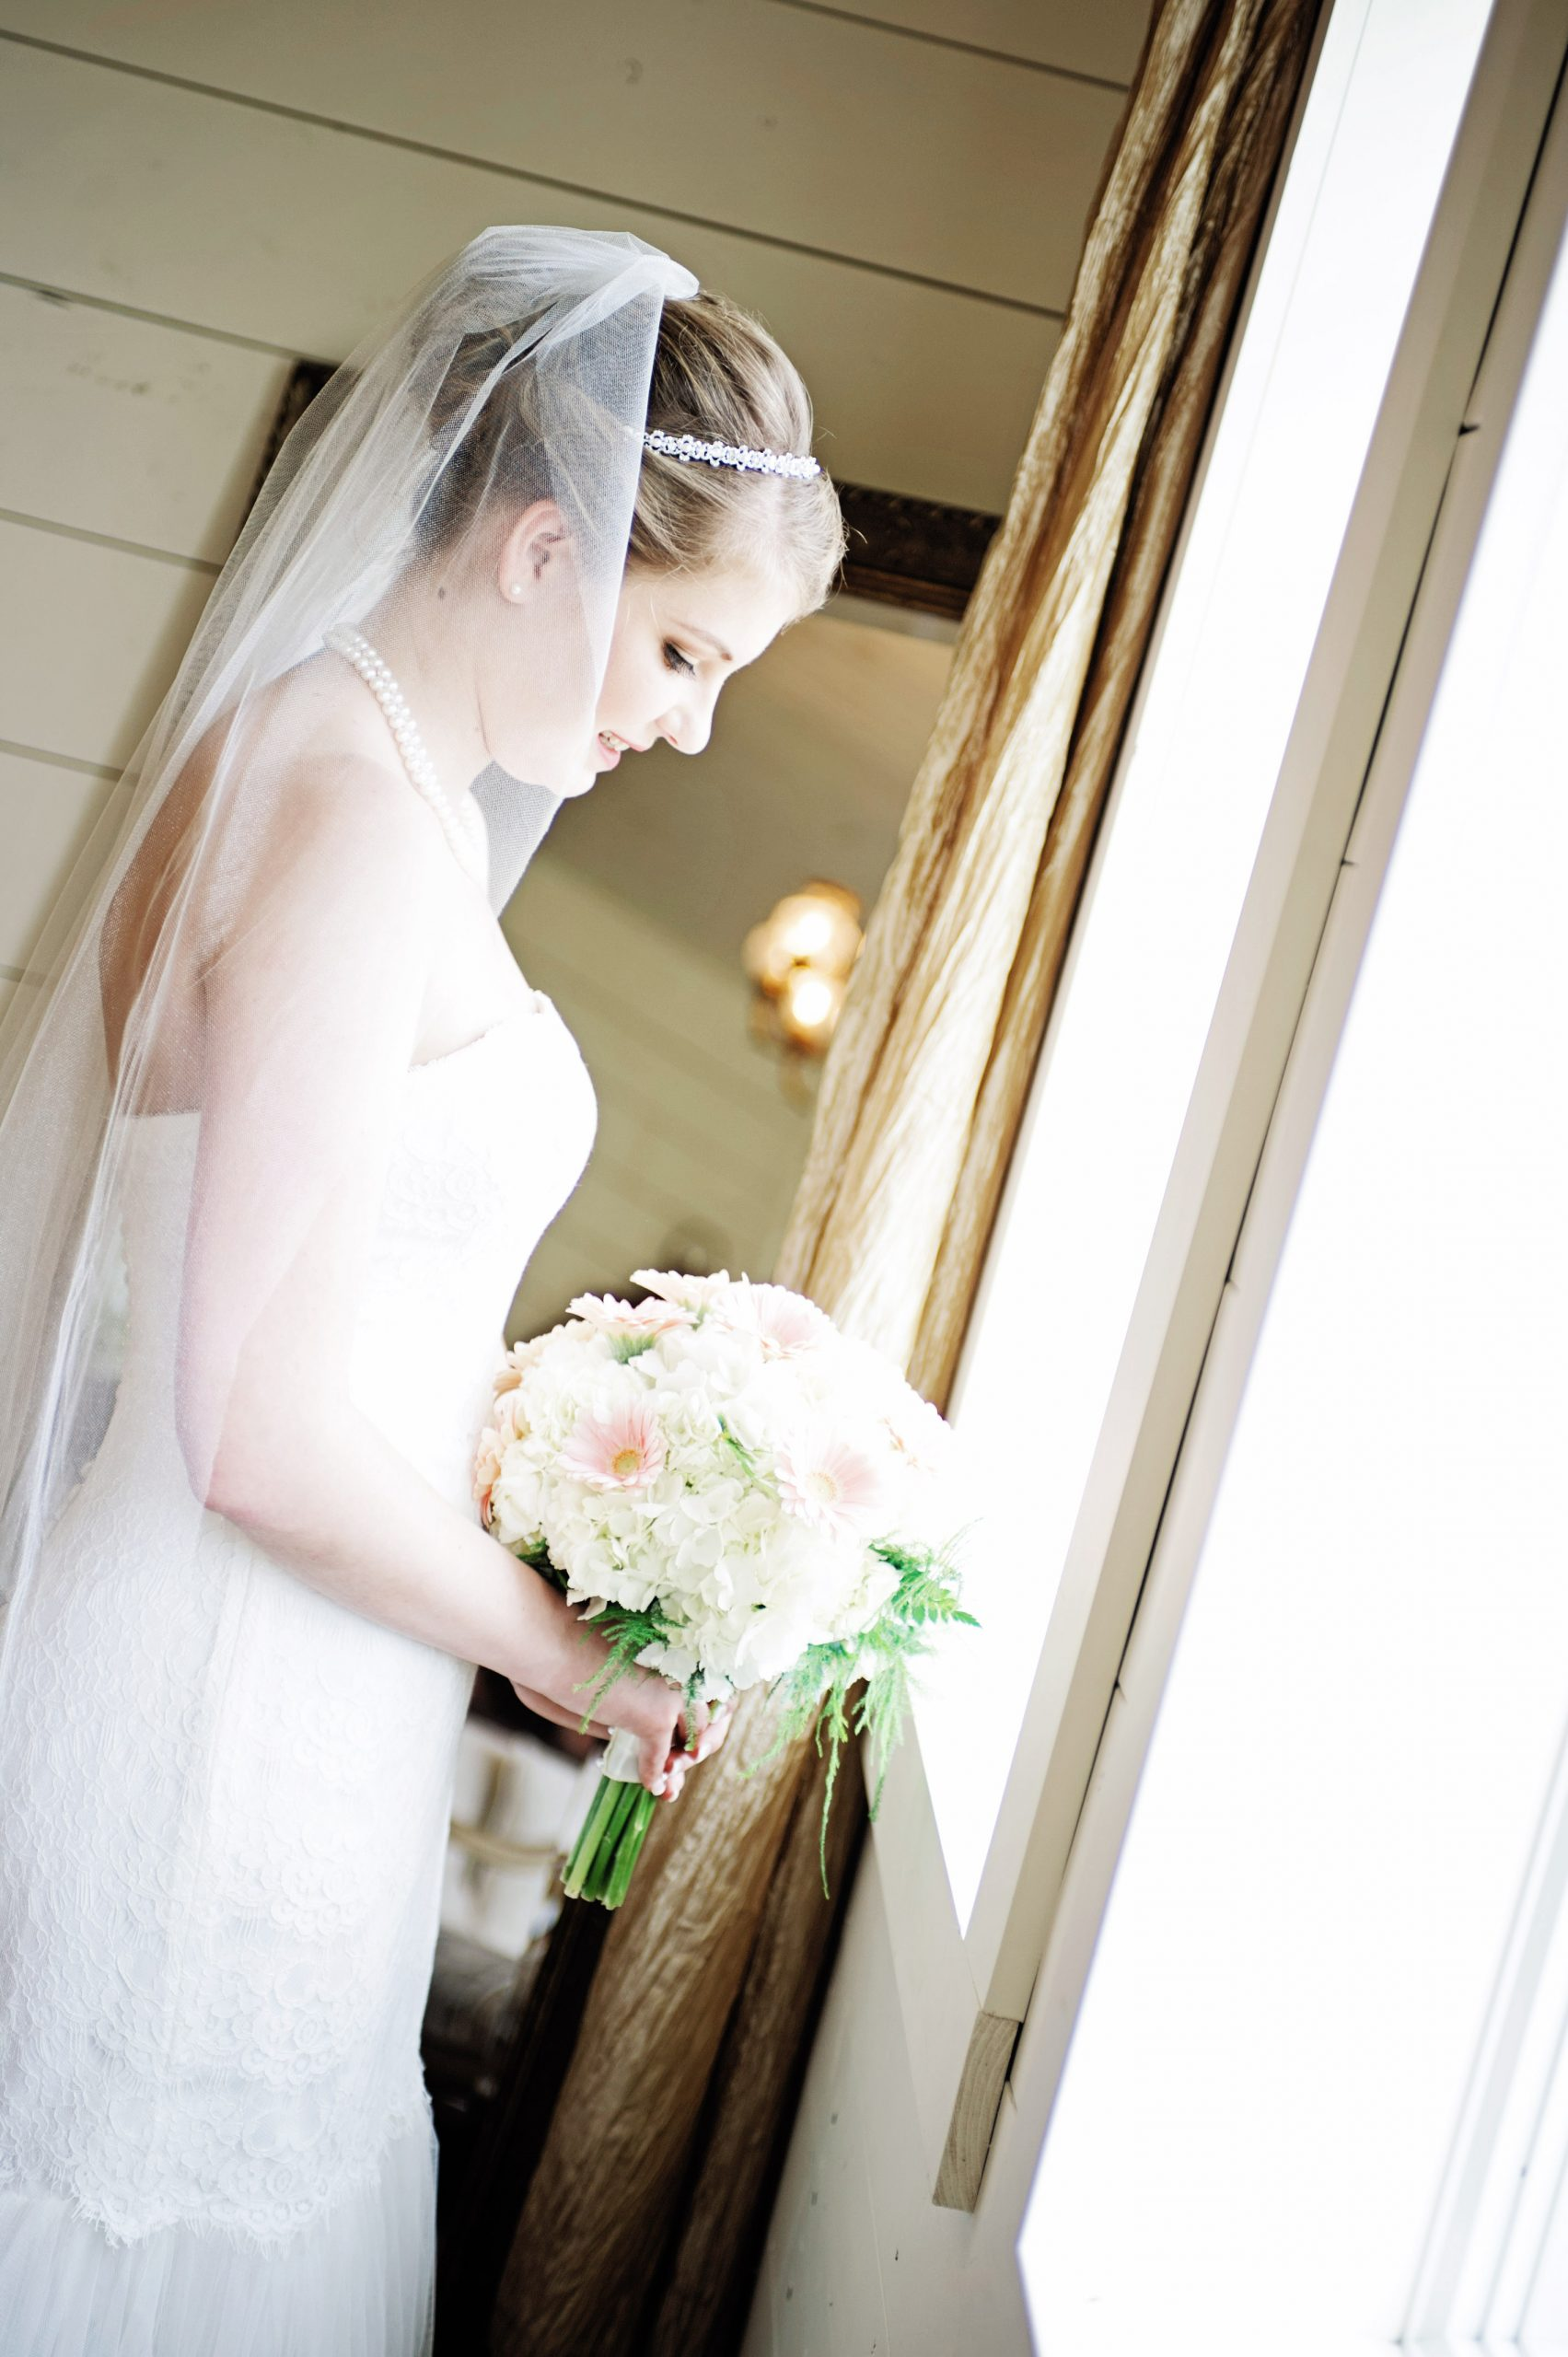 Bride, Kady, takes in her last few minutes of being unwedded as Kelsey Kinard of Lovefusion Photography captures this amazing moment at Lakeview Farms of York, PA. Featured in Dream Weddings.